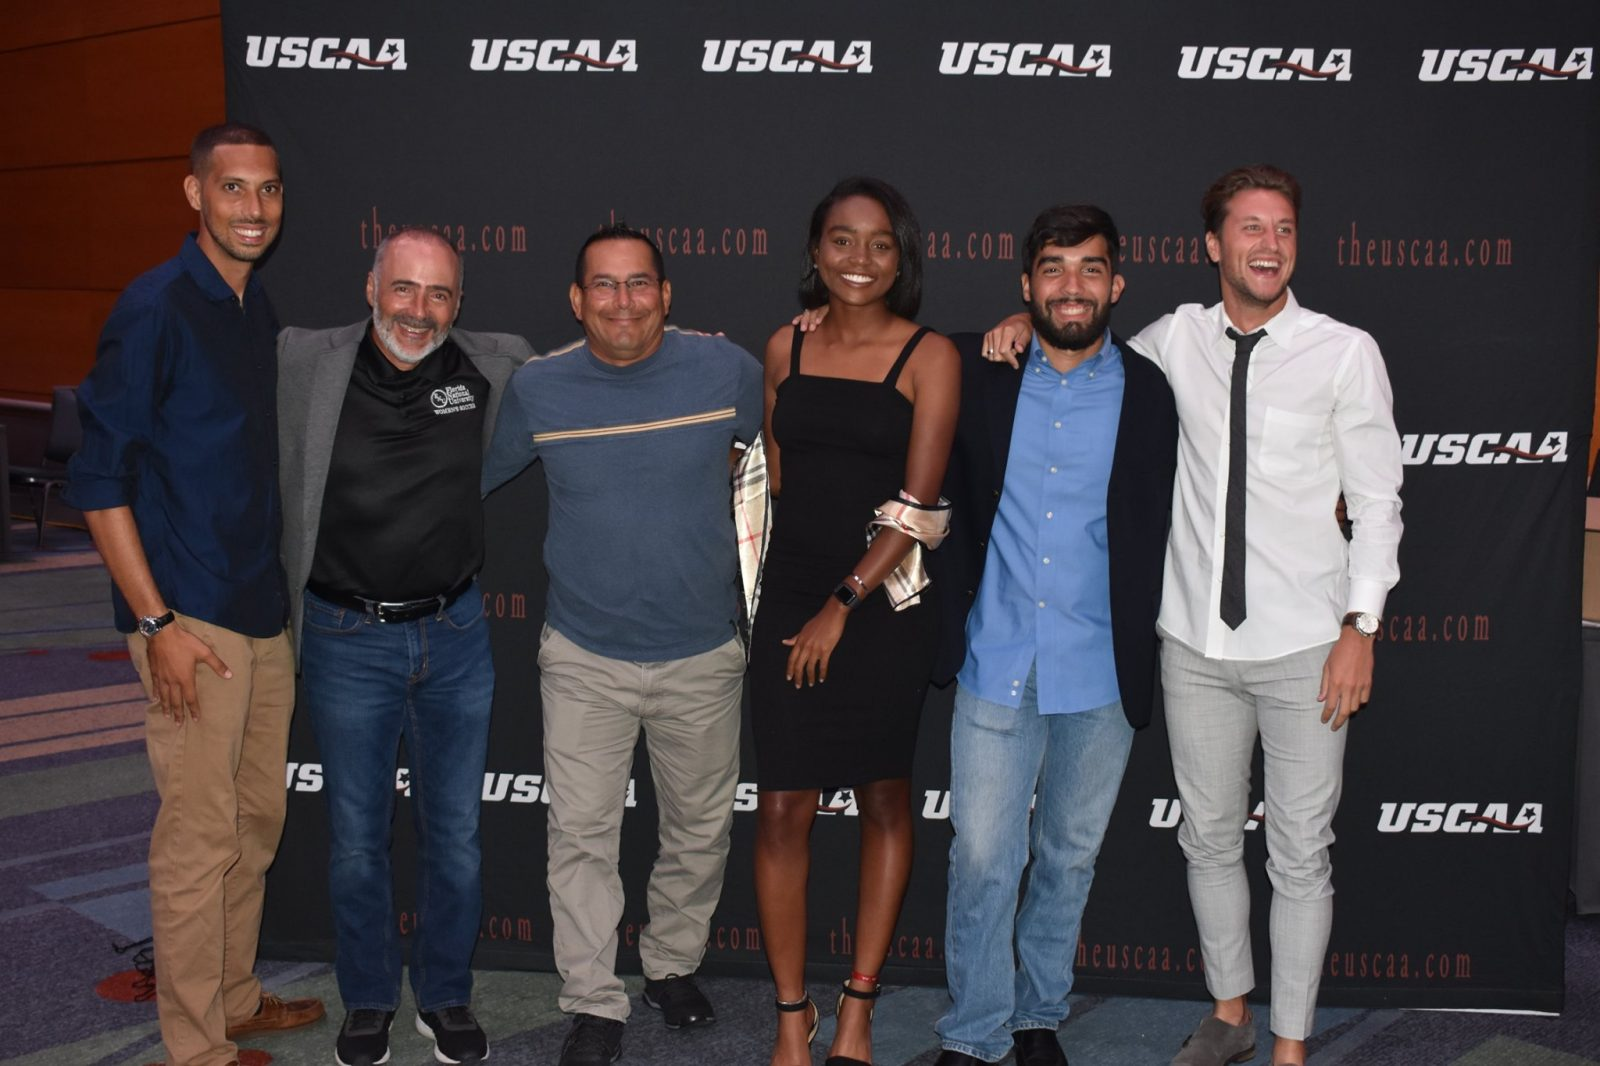 Women's Soccer attending the USCAA annual banquet